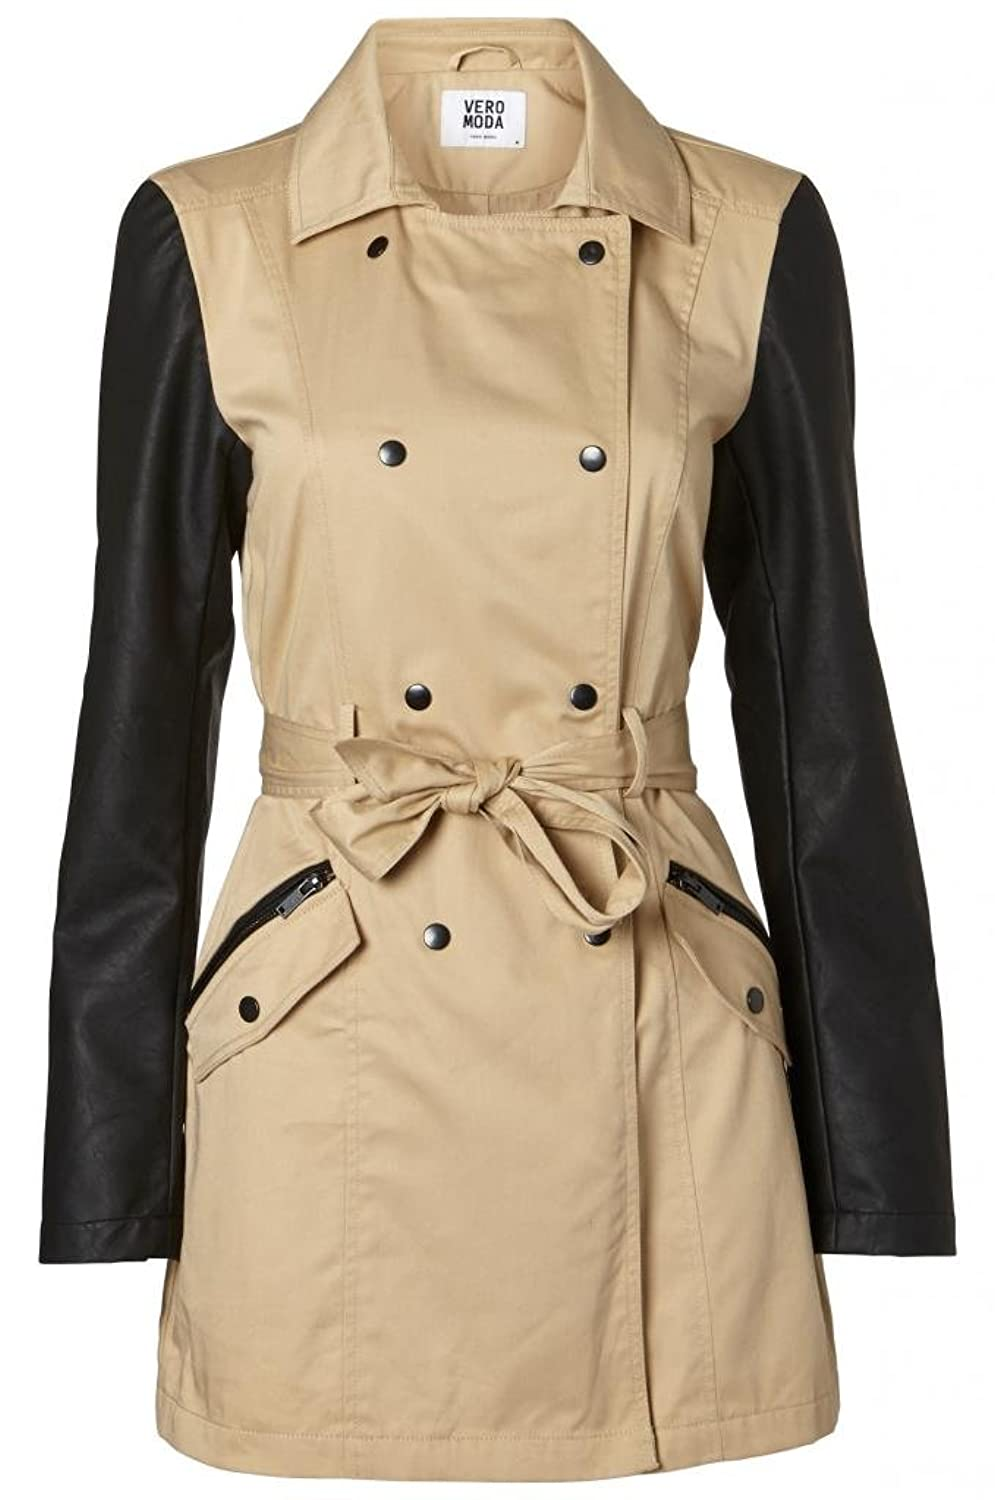 Vero Moda - Track Faux Leather Sleeve Spring Trench Coat dream toys втулка 5 режимов ротации